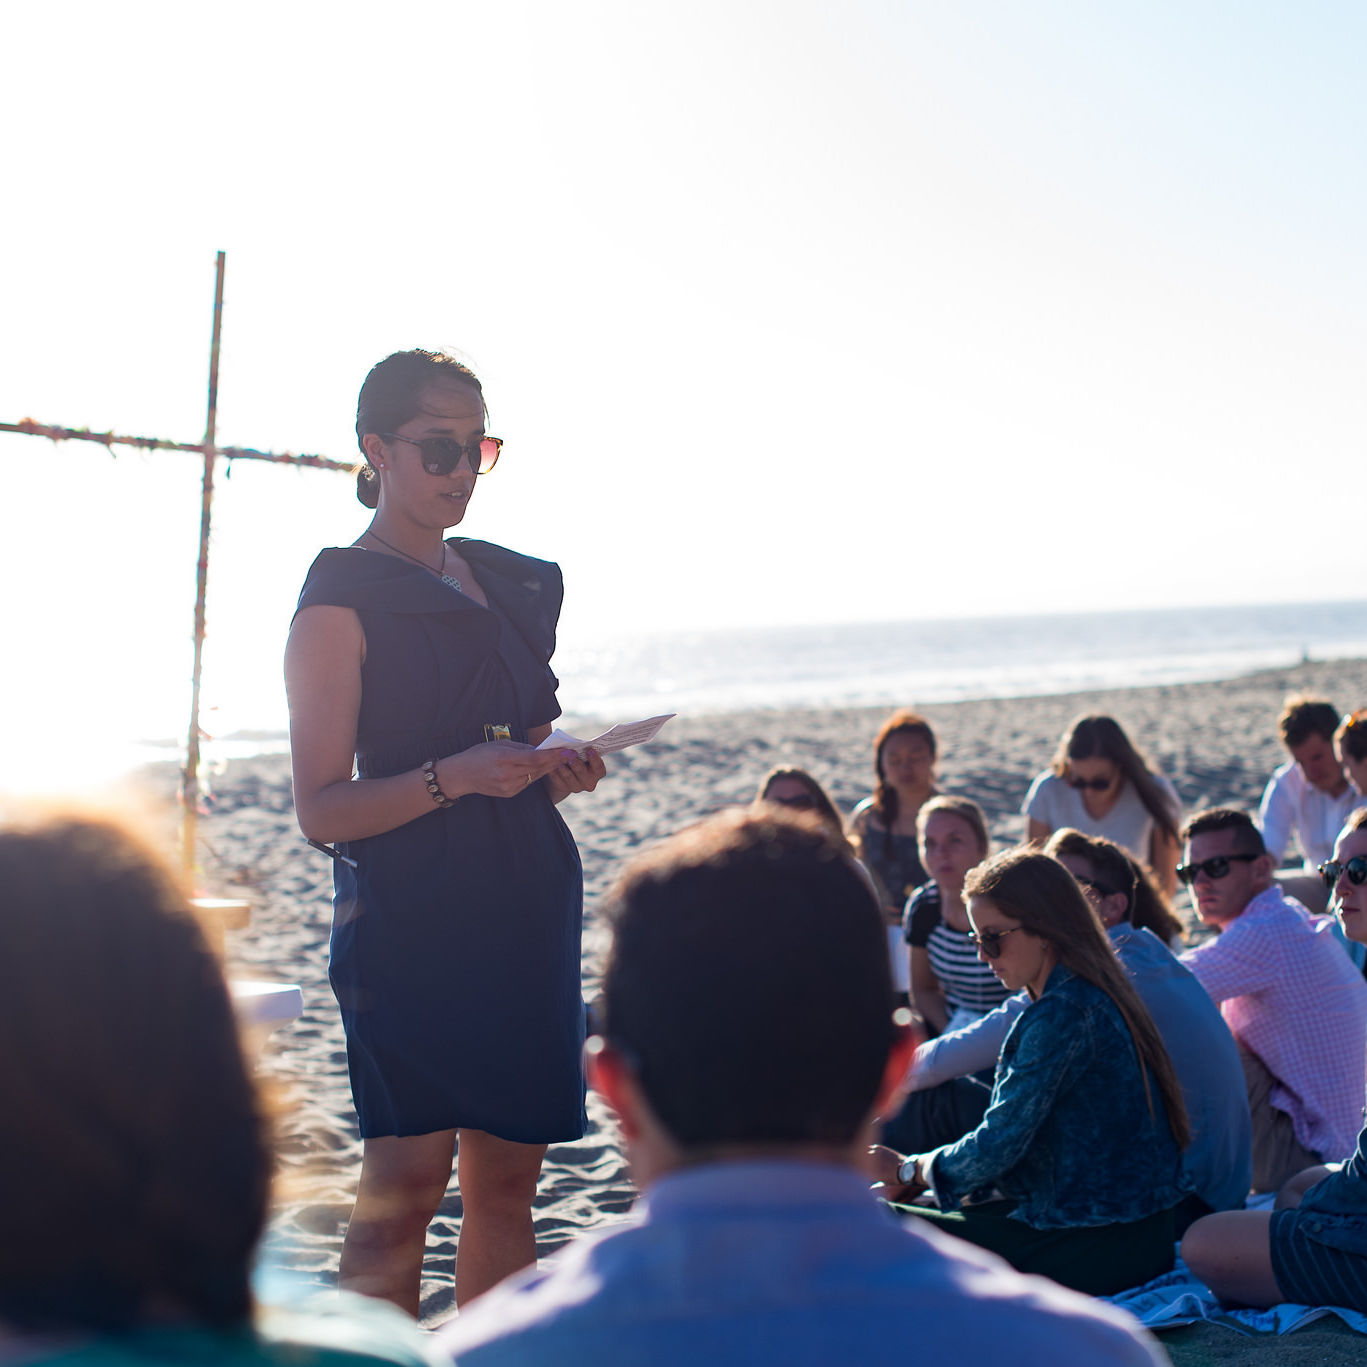 Lilly Roggerkamp (JVC Staff) reading during Orientation mass taking place at Camp St. Francis in California in 2016.